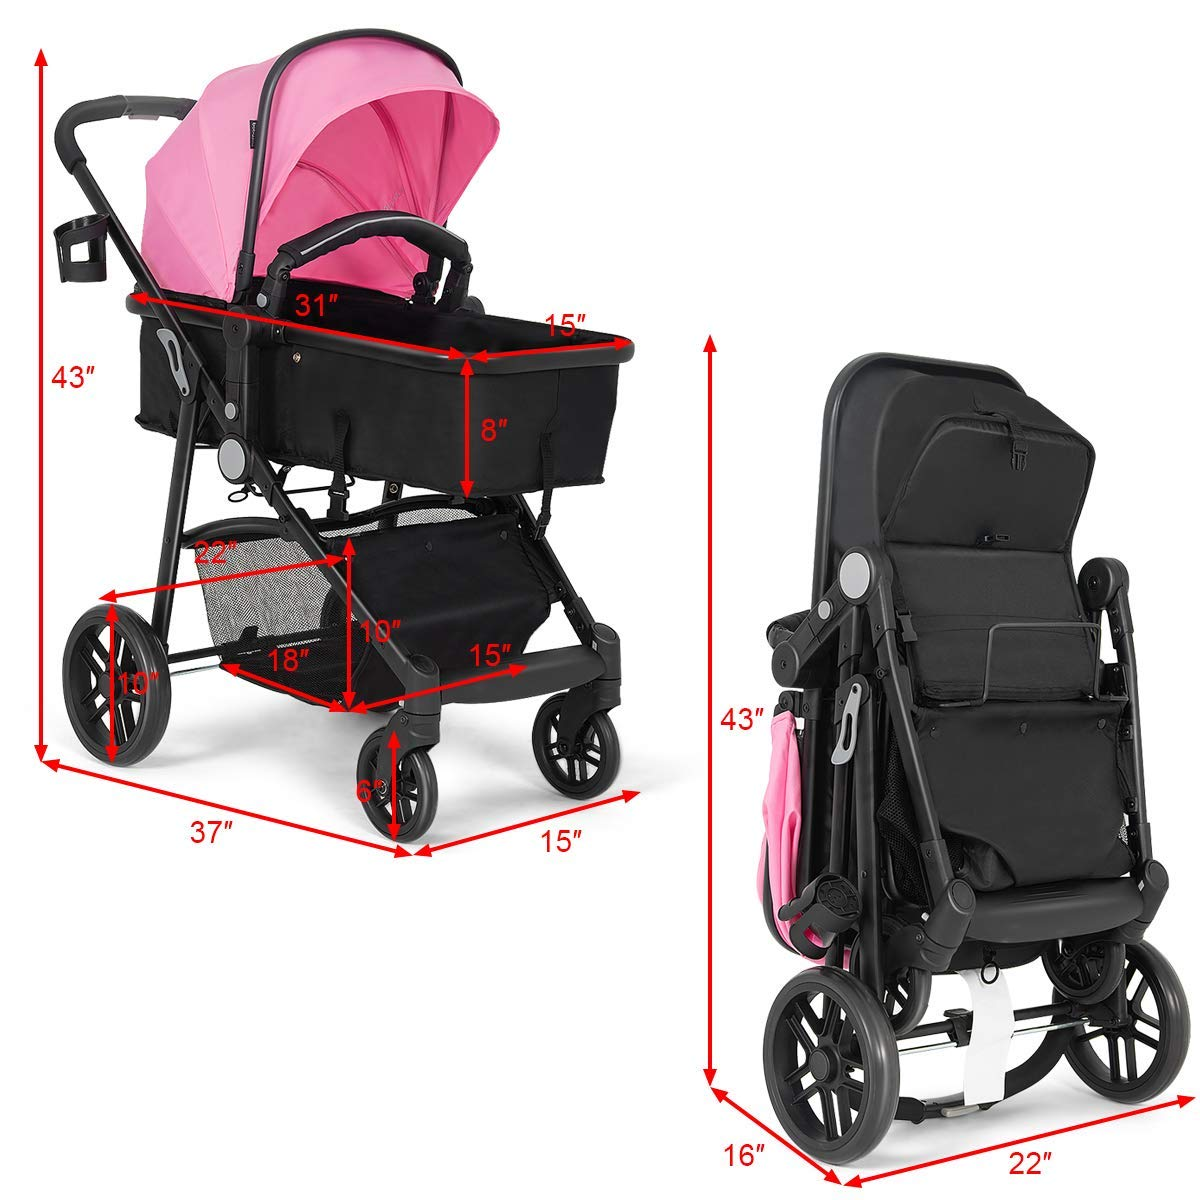 Costzon Baby Stroller, 2 in 1 Convertible Carriage Bassinet to Stroller, Pushchair with Foot Cover, Cup Holder, Large Storage Space, Wheels Suspension, 5-Point Harness (Pink Color) by Costzon (Image #5)